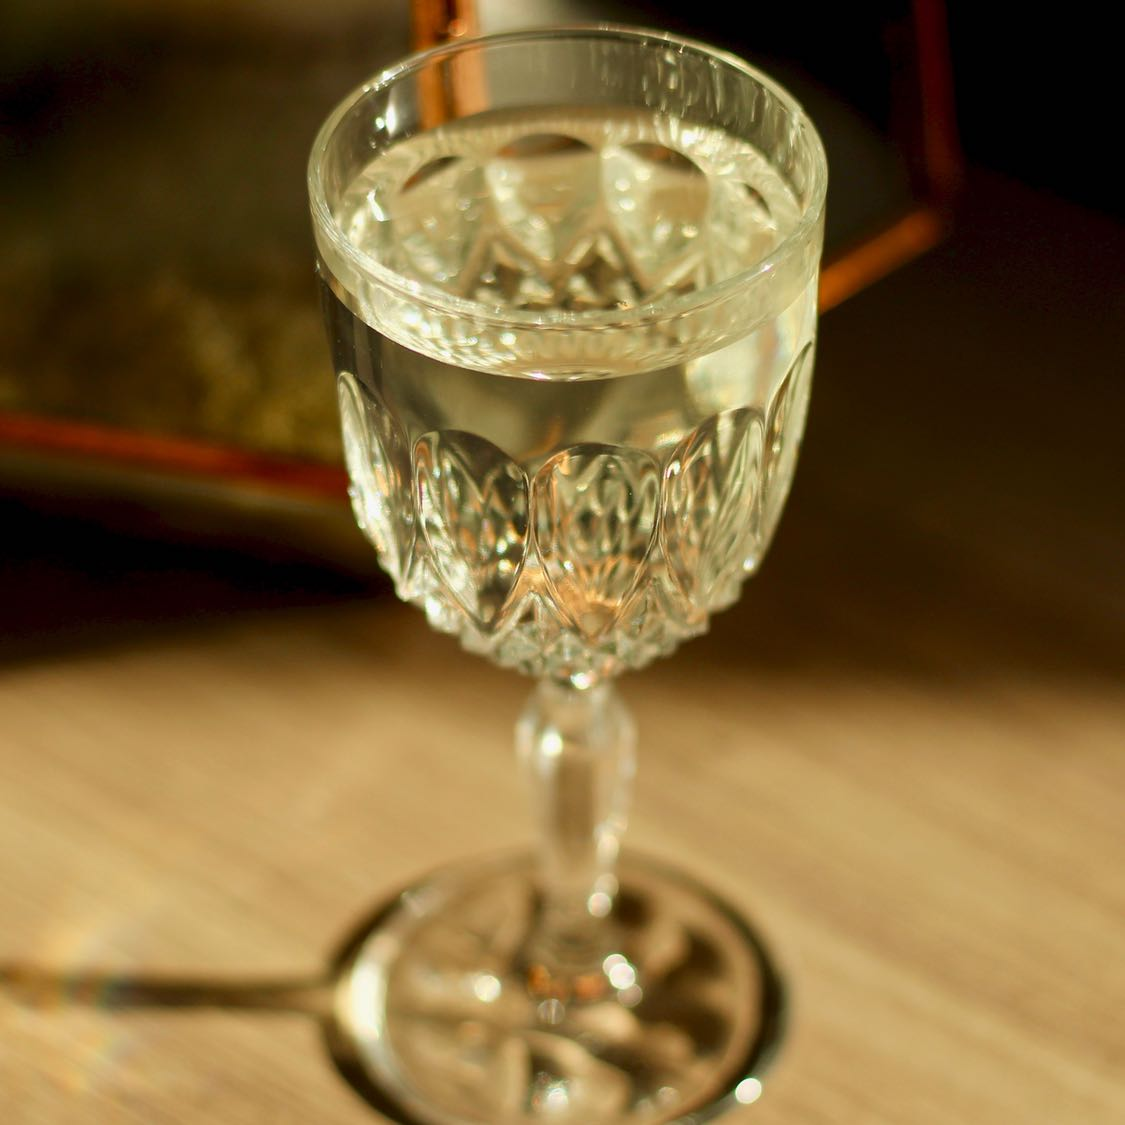 Martini - The Original Waldorf Astoria Martini Recipe